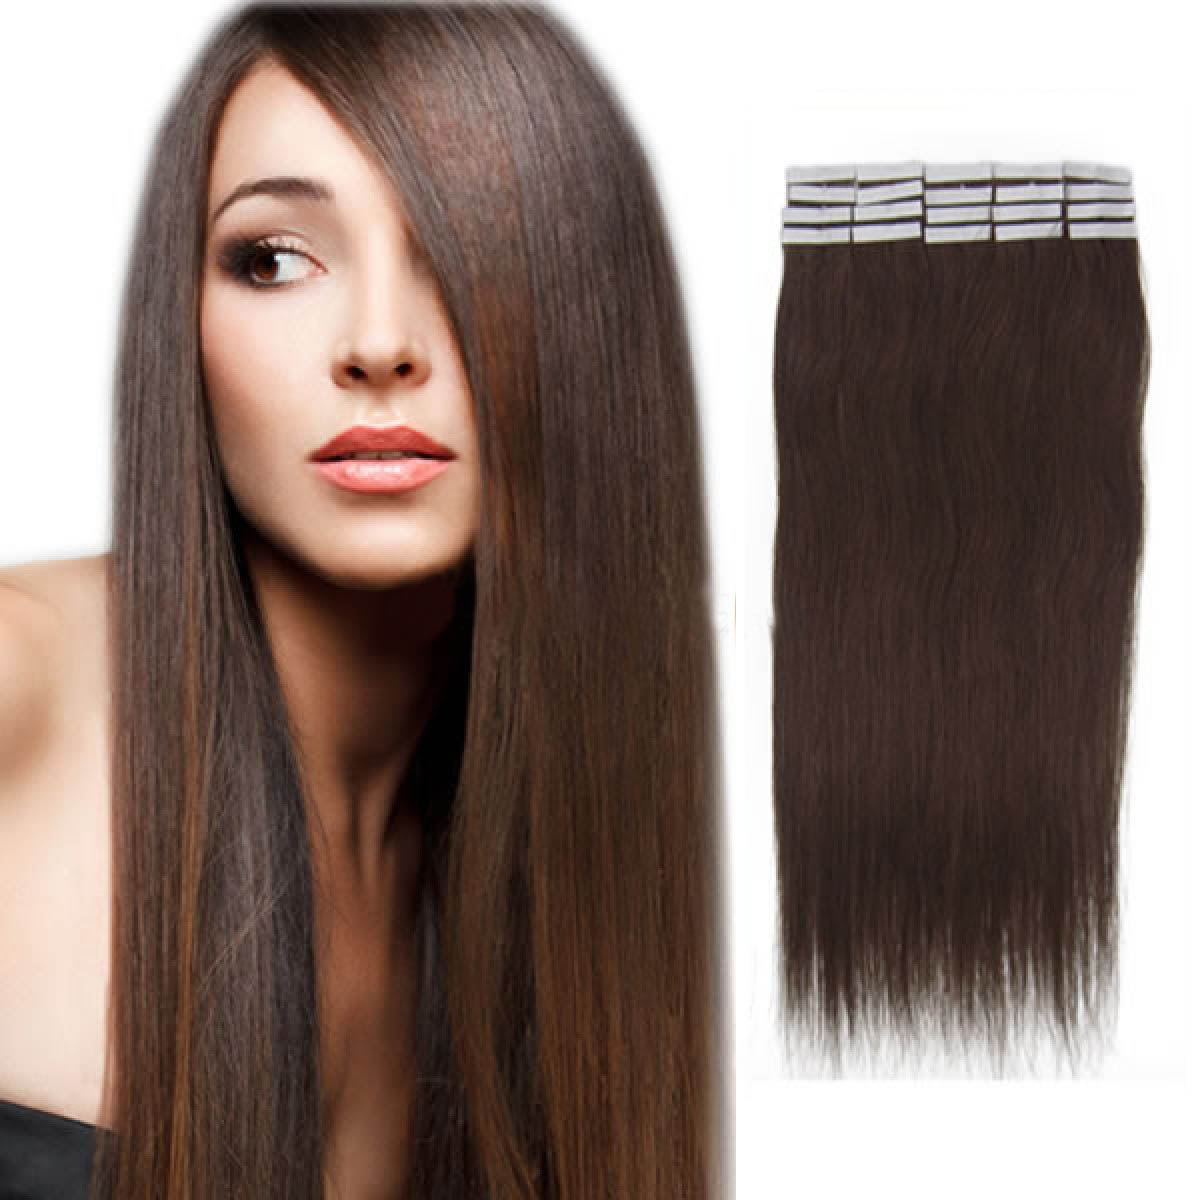 16 Inch #2 Dark Brown Tape In Human Hair Extensions 20pcs